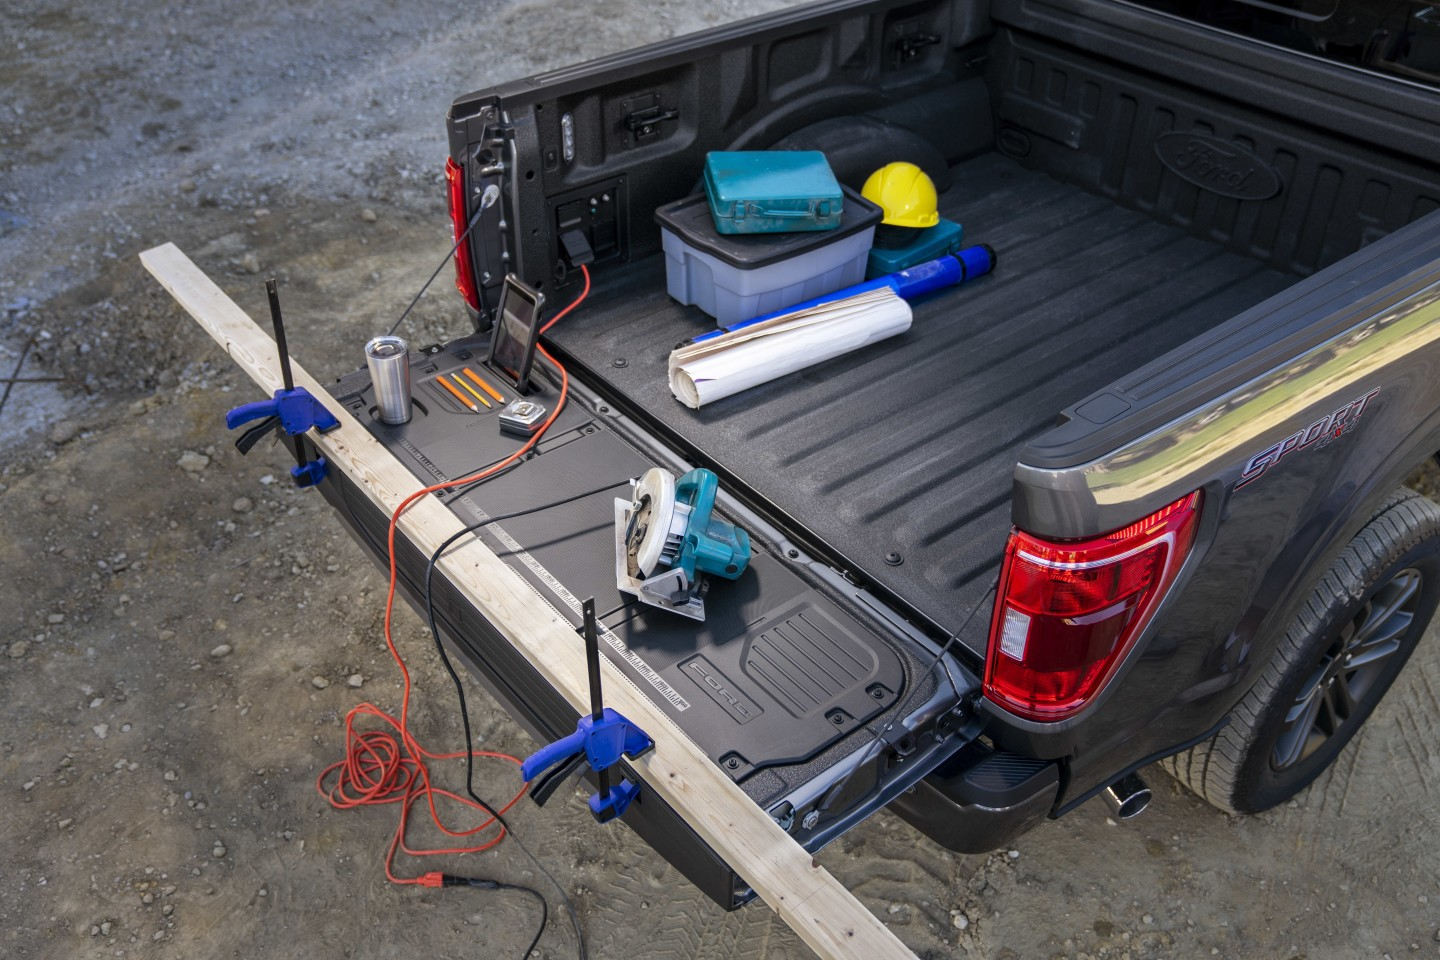 Optional Tailgate Work Surface including integrated rulers, a mobile device holder, cupholder and pencil holder, tie-down cleats (doubling as bottle openers), clamp pockets and optional power generator